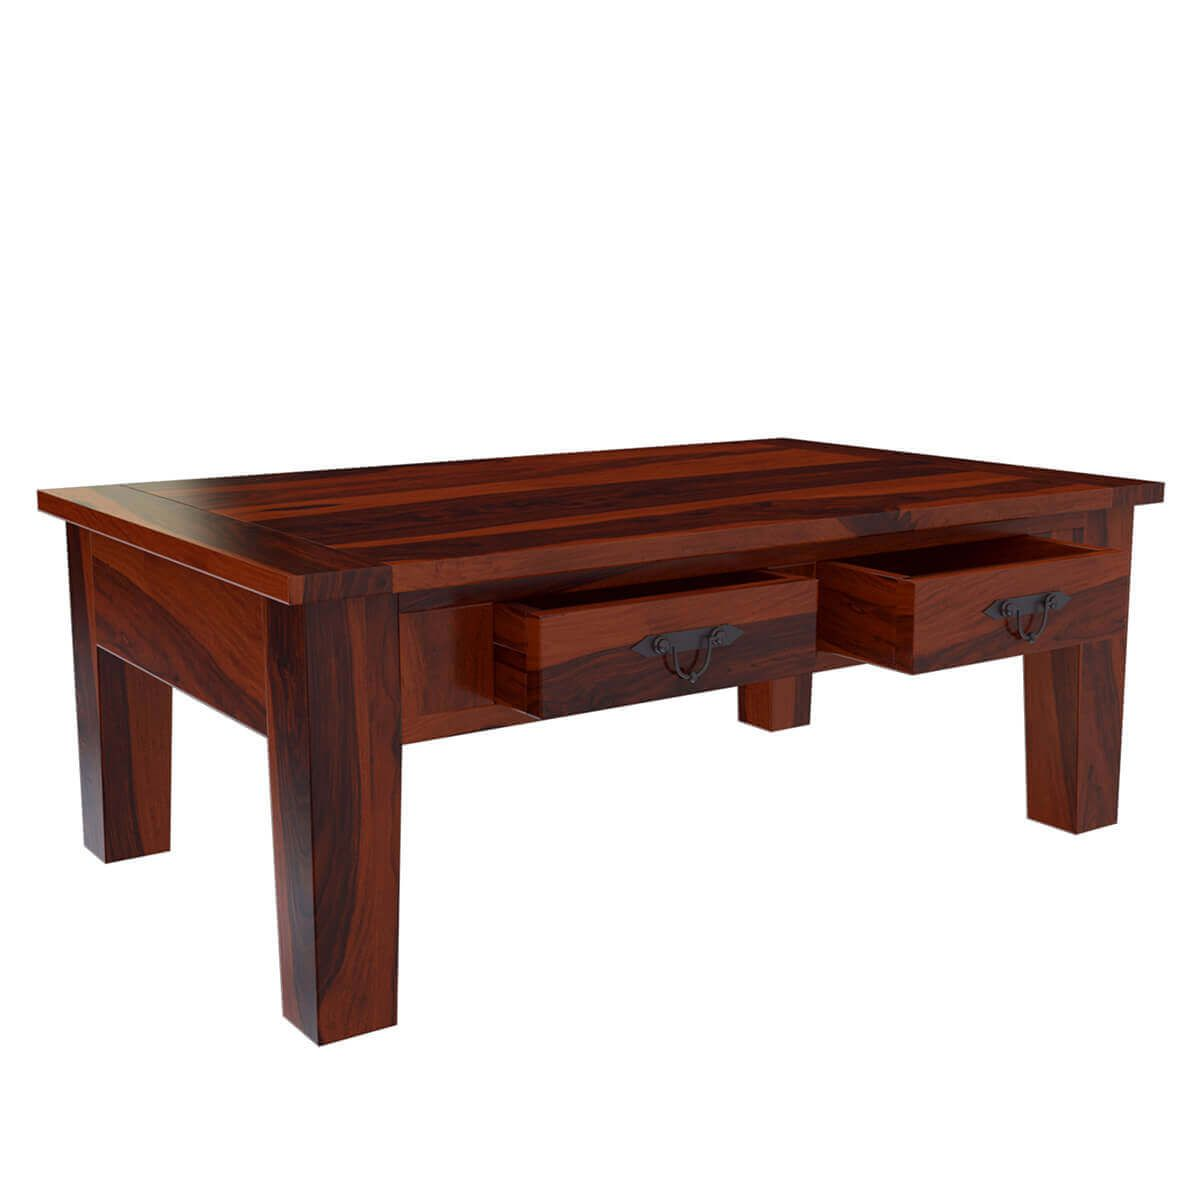 Tierra Rustic Style Solid Wood 3 Piece Coffee Table Set 3 Piece Coffee Table Set Coffee Table Coffee Table Setting [ 1200 x 1200 Pixel ]